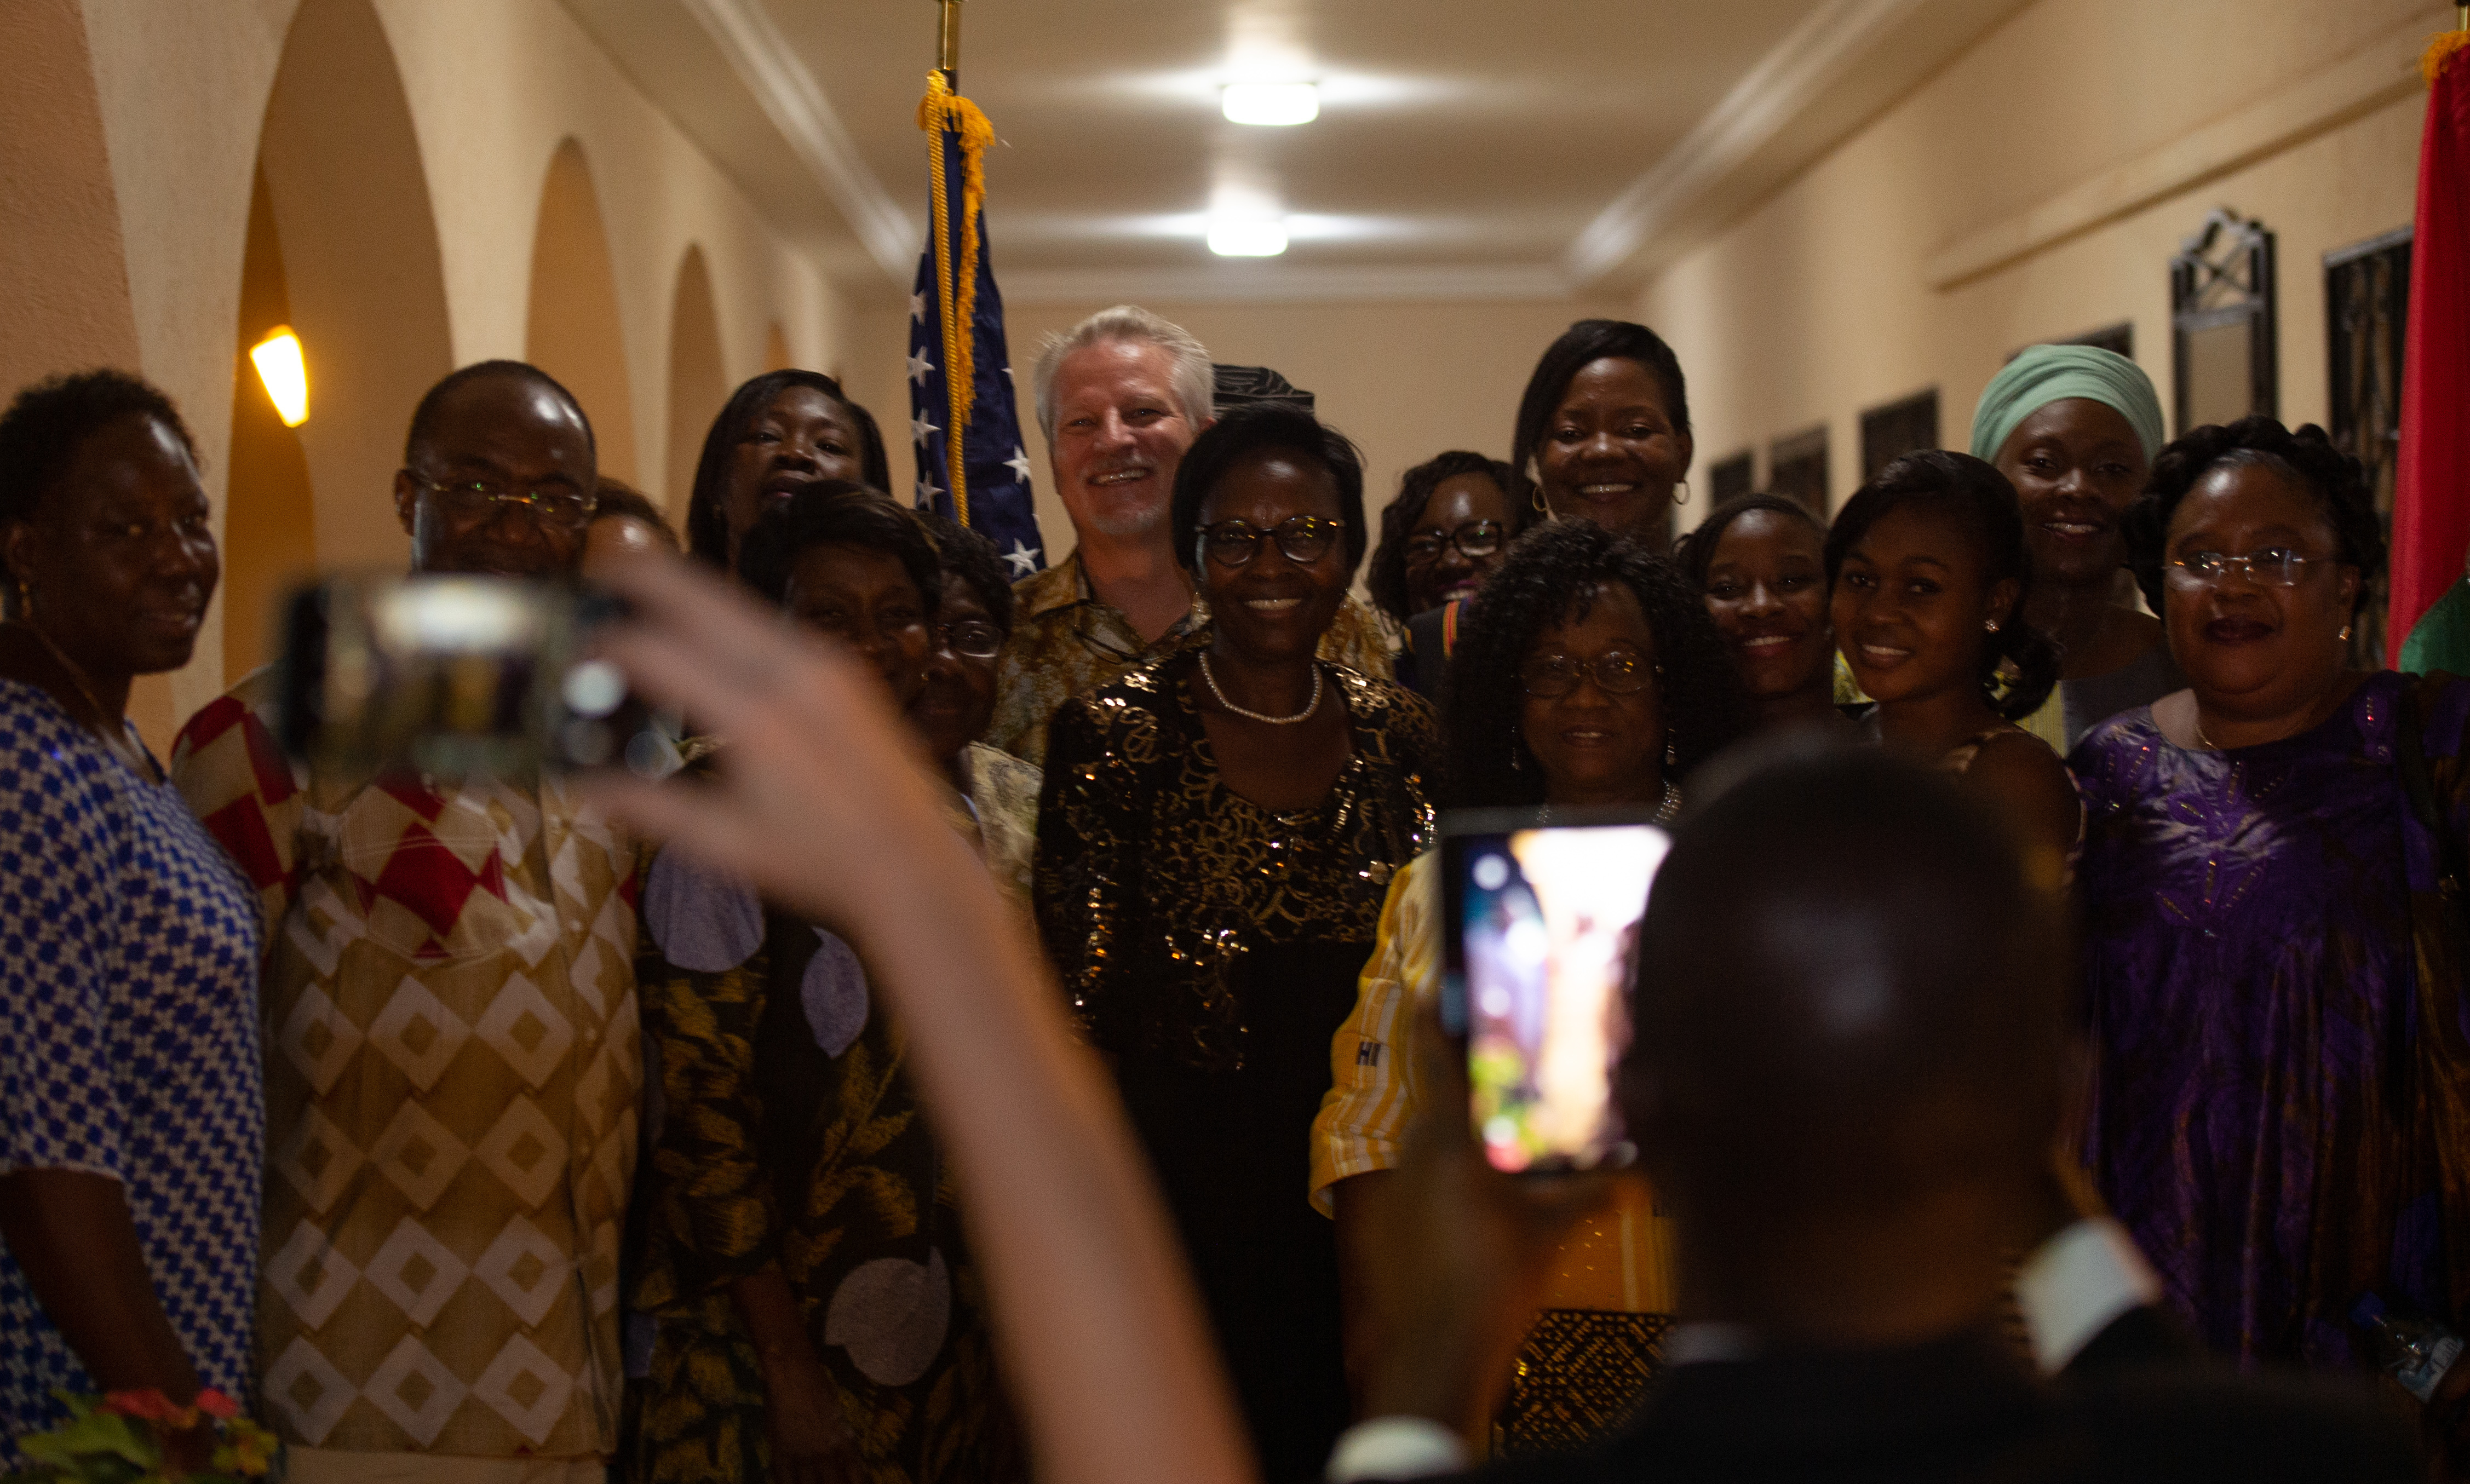 U.S. Ambassador to Burkina Faso, Andrew Young, takes a photo with attendees and guest speaker Dr. Justine Coulidiati-Kielem, regional coordinator for Women of the G5 Sahel Platform, at an embassy hosted Women, Peace, and Security Reception during the multi-national special operations exercise, Flintlock 2019 Feb 19.  Amb. Young stressed the importance of the vital and strategic roll women play in the development and stability of Africa's future. Flintlock 2019 better enables African and western partners to conduct real world missions structured around a coherent campaign plan and seamless integration. (U.S. Navy photo by MC2 (SW/AW) Evan Parker / released)